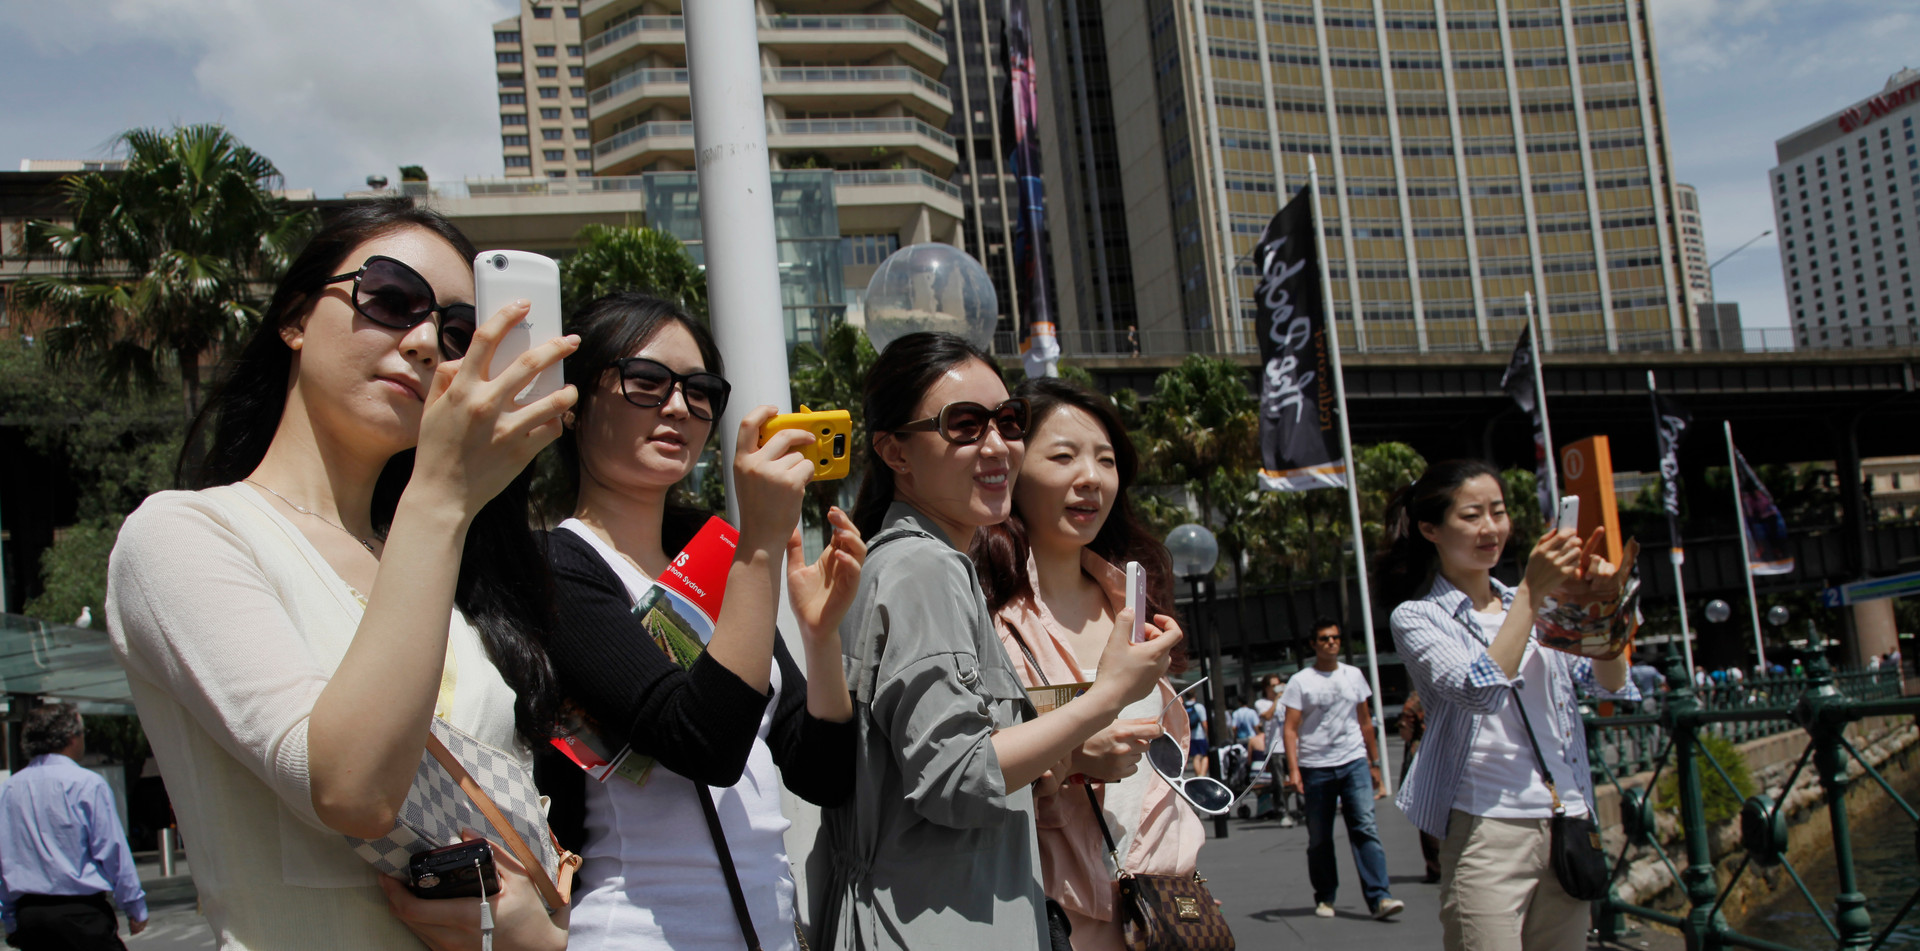 Chinese tourists doing selfies in Sydney, Australia